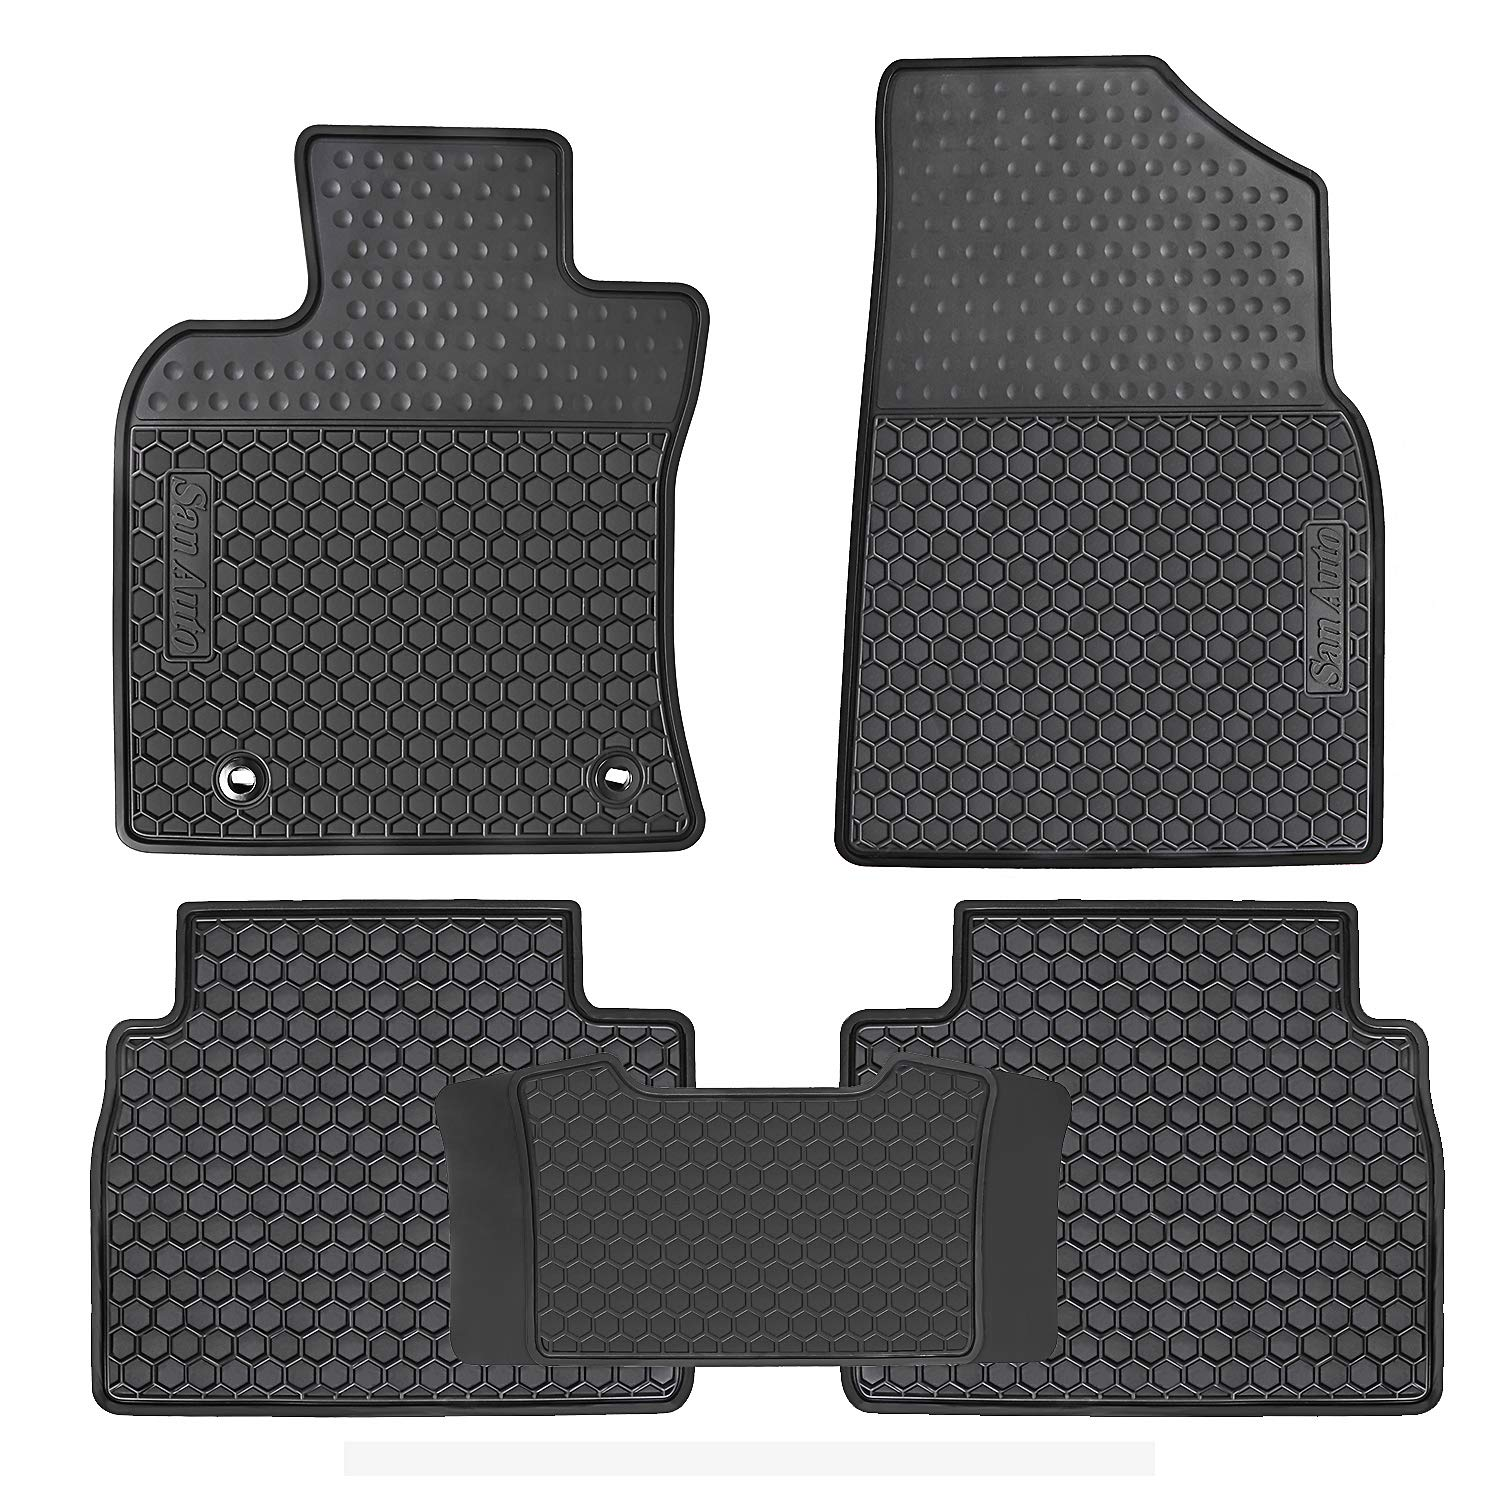 HD-Mart Custom Fit for Toyota Camry 8th 2018 2019 Car Floor Mats Rubber Full Black All Weather Season Heavy Duty Odorless